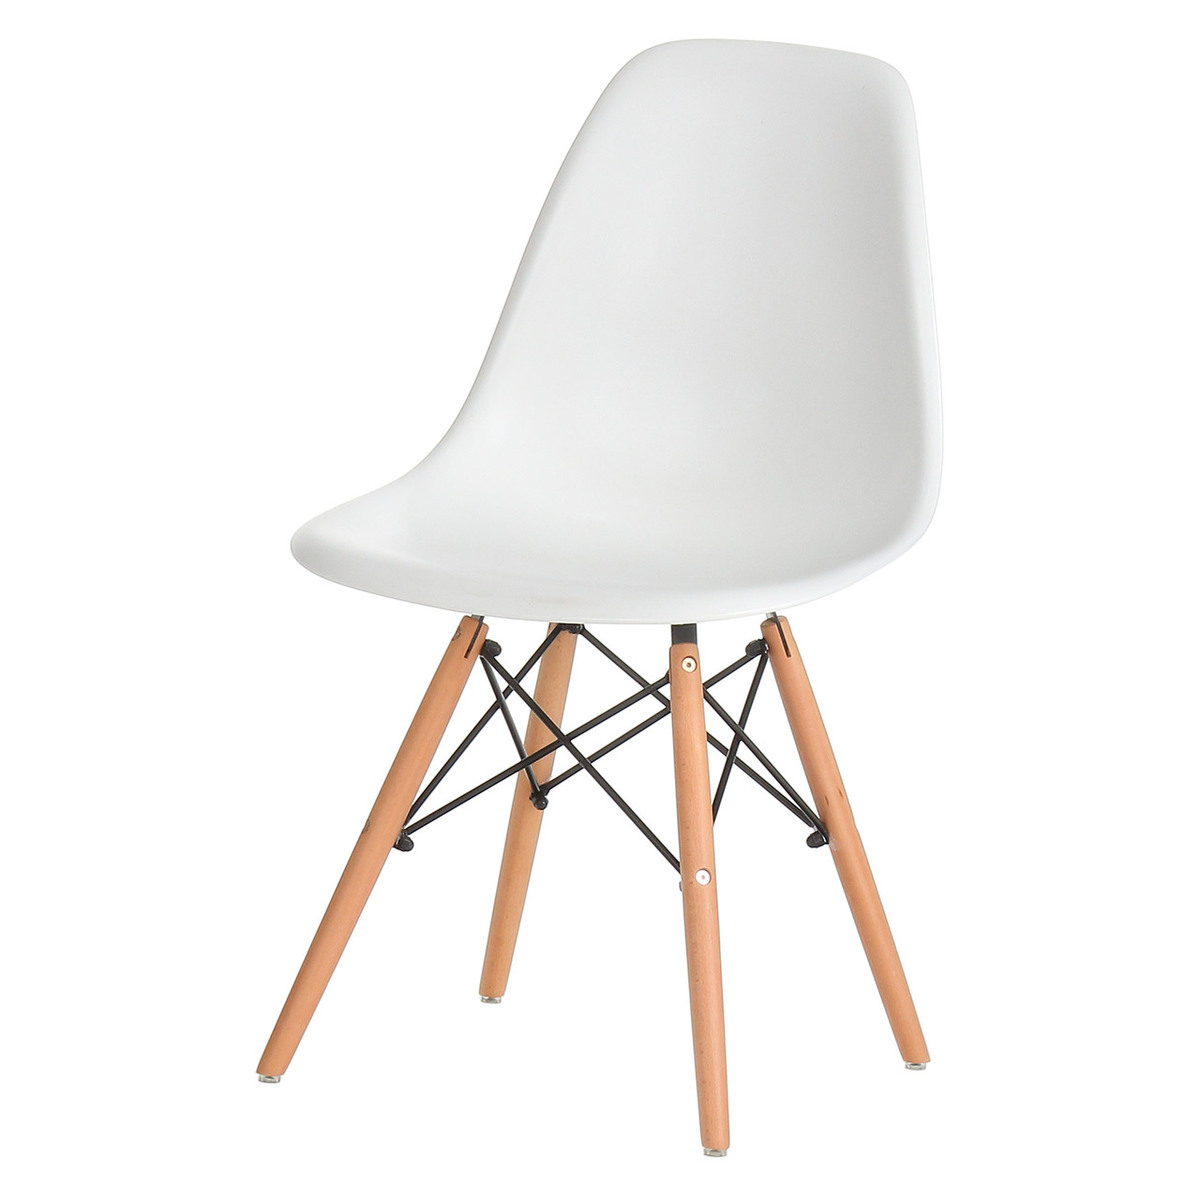 Eames Eiffel Dining Side Chair Replica White with Oak Legs  sc 1 st  Walmart & Eames Eiffel Dining Side Chair Replica White with Oak Legs ...